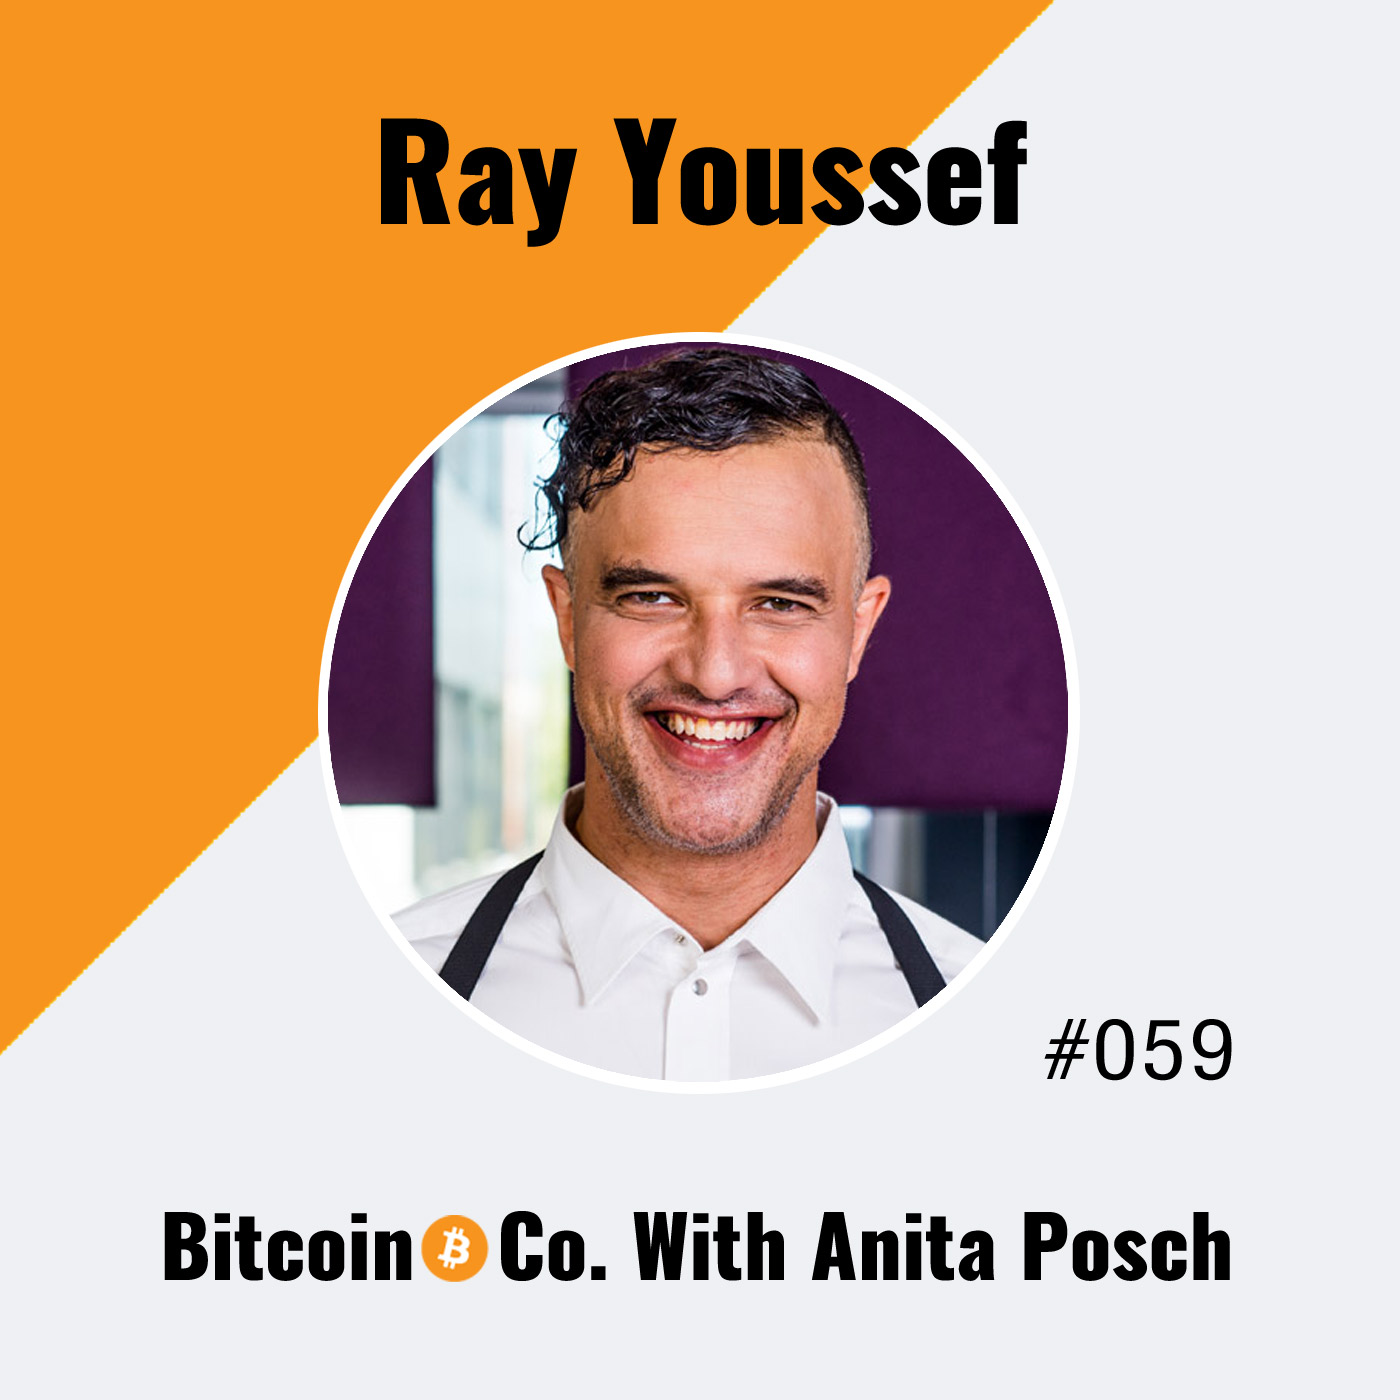 Ray Youssef: Bringing Bitcoin Into Africa With Gift Cards Is Solving Real Problems